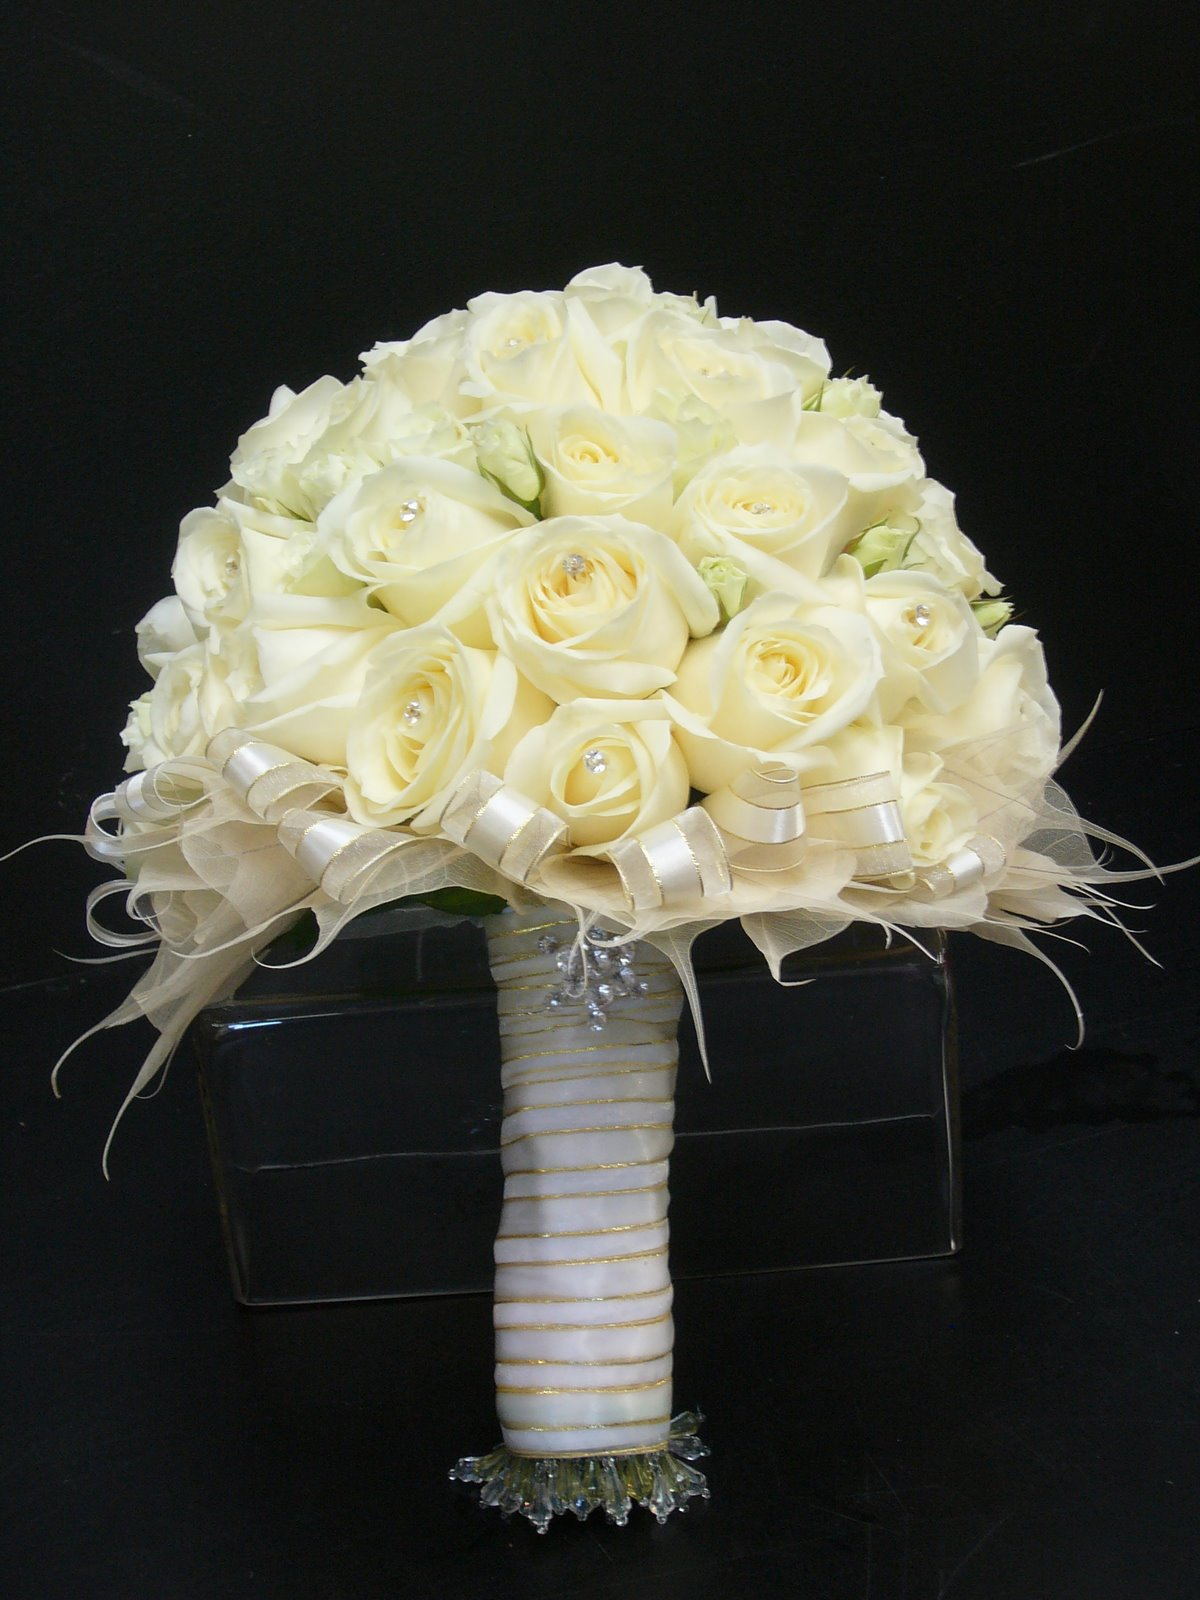 The beautiful white wedding flowers photos for Best flowers for wedding bouquet